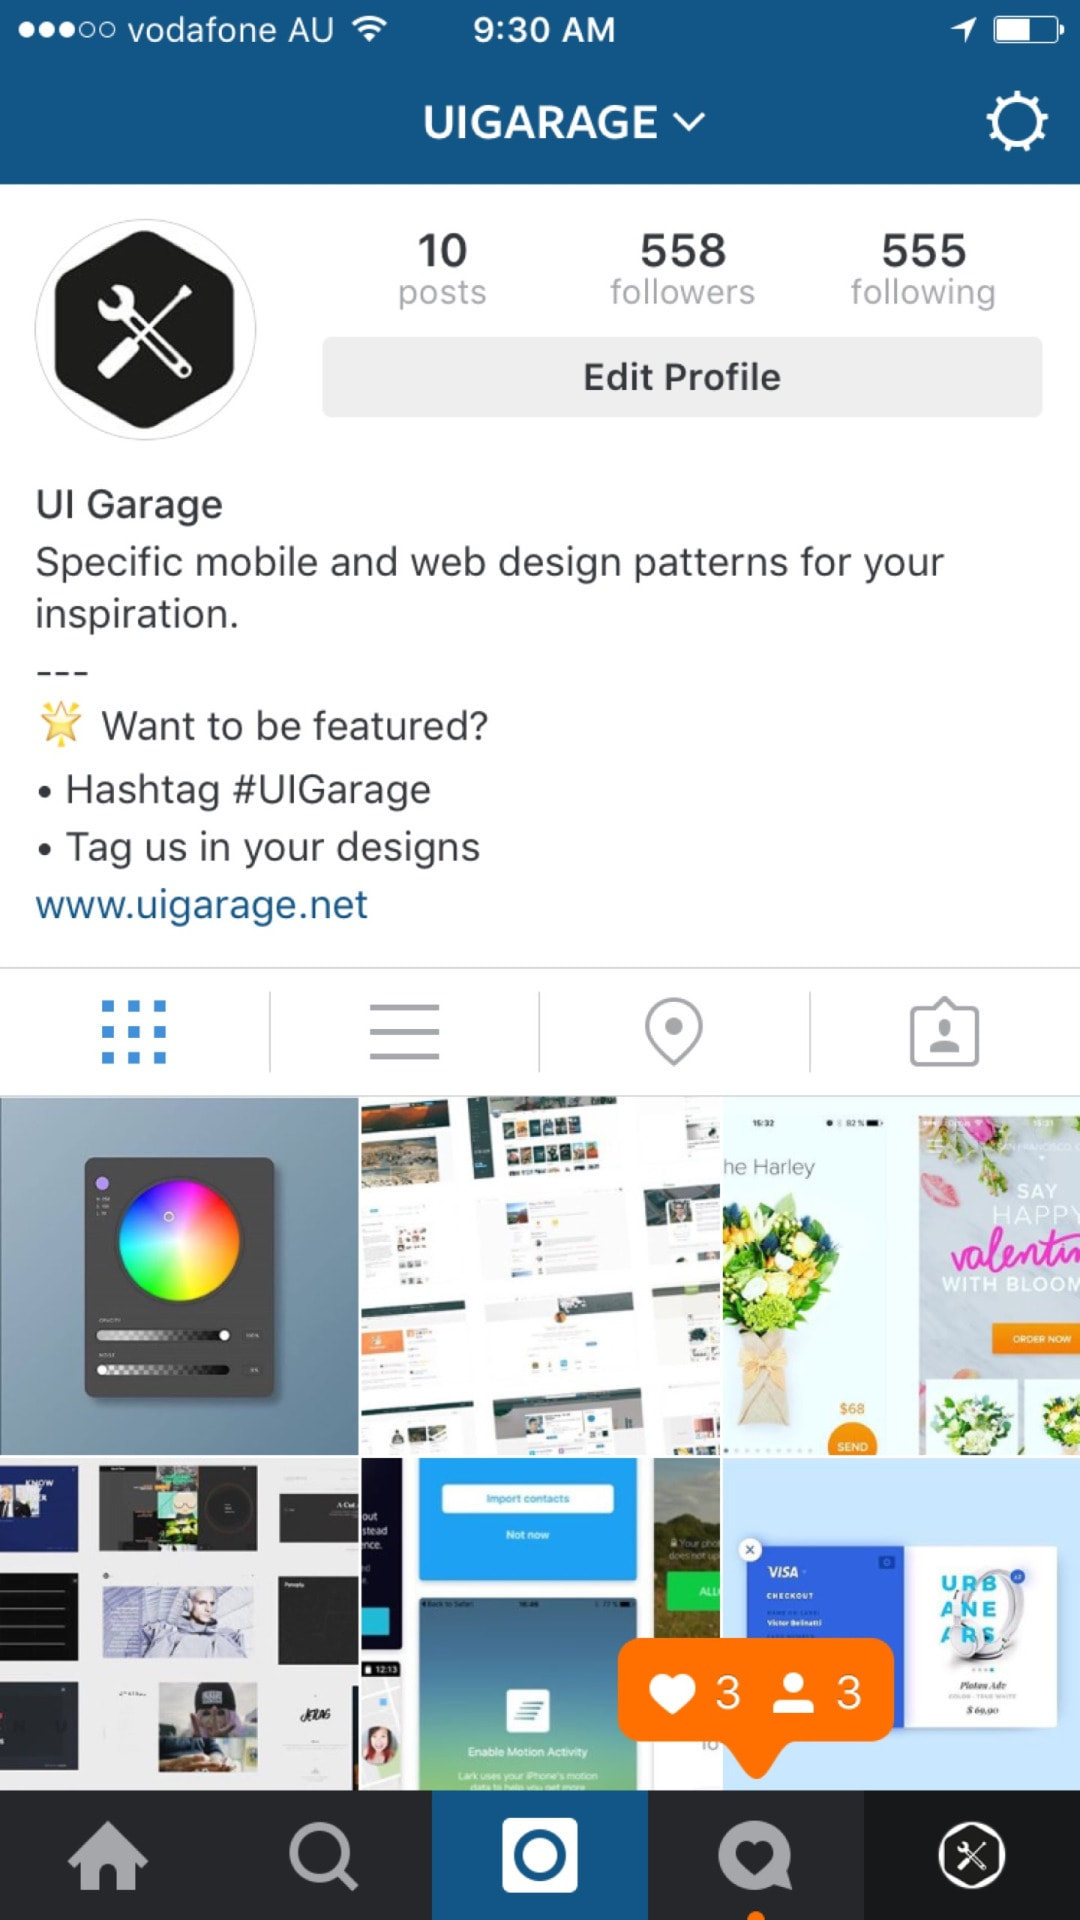 Tab bar by Instagram from UIGarage